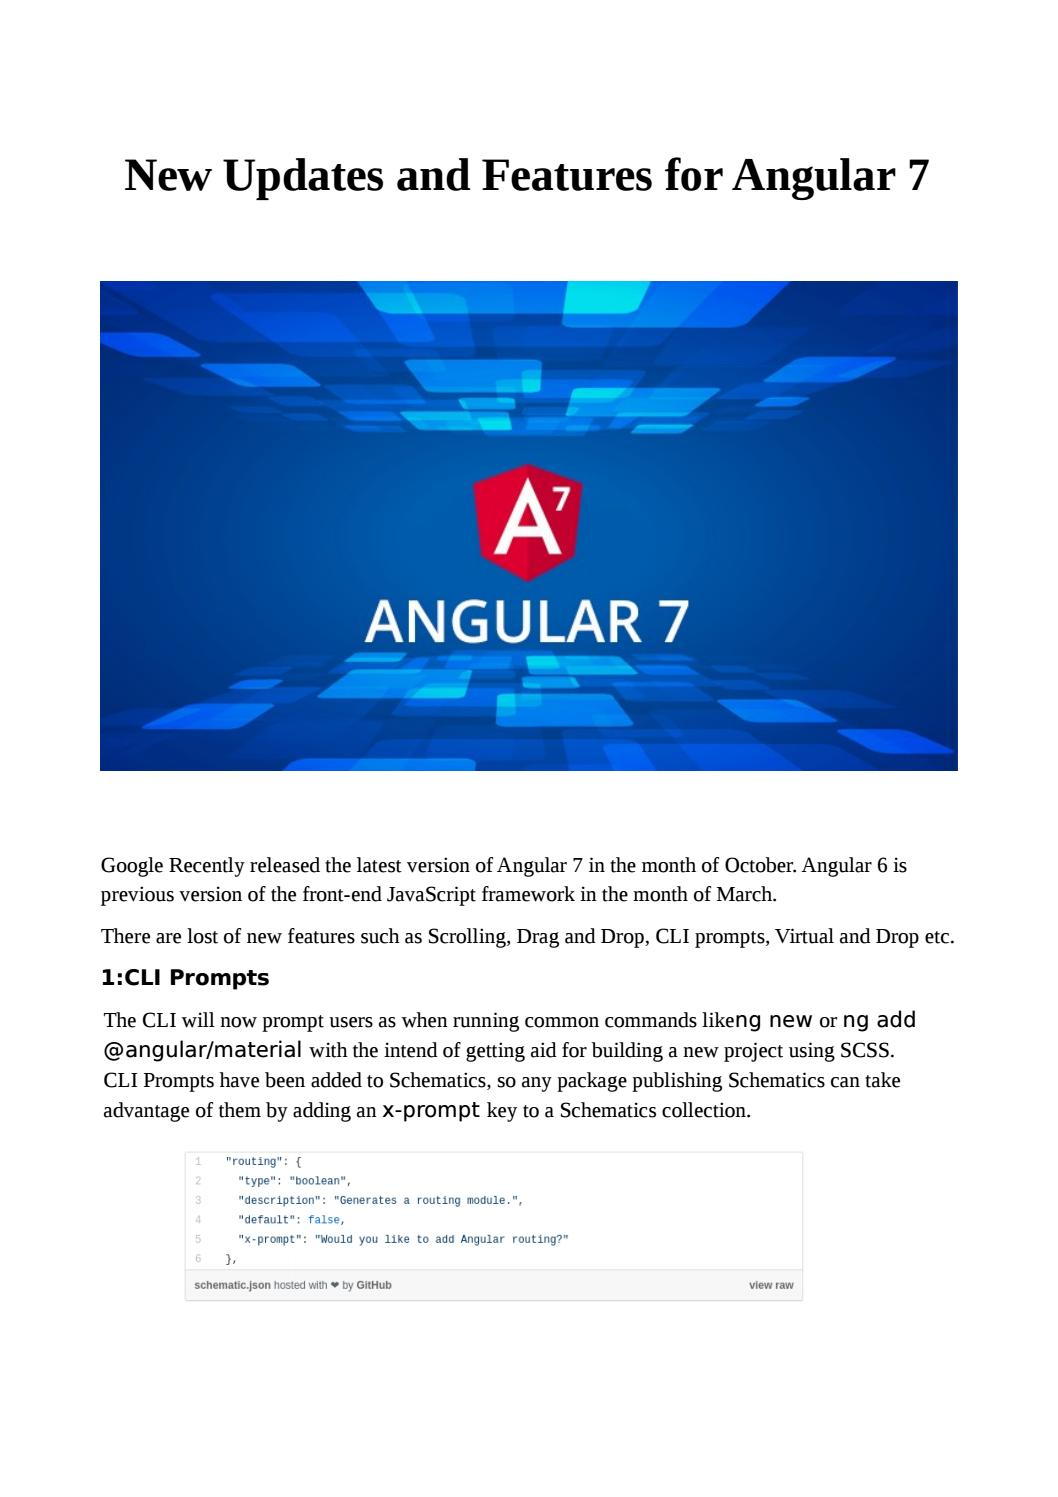 New updates and features for angular 7 by quickbeyond - issuu